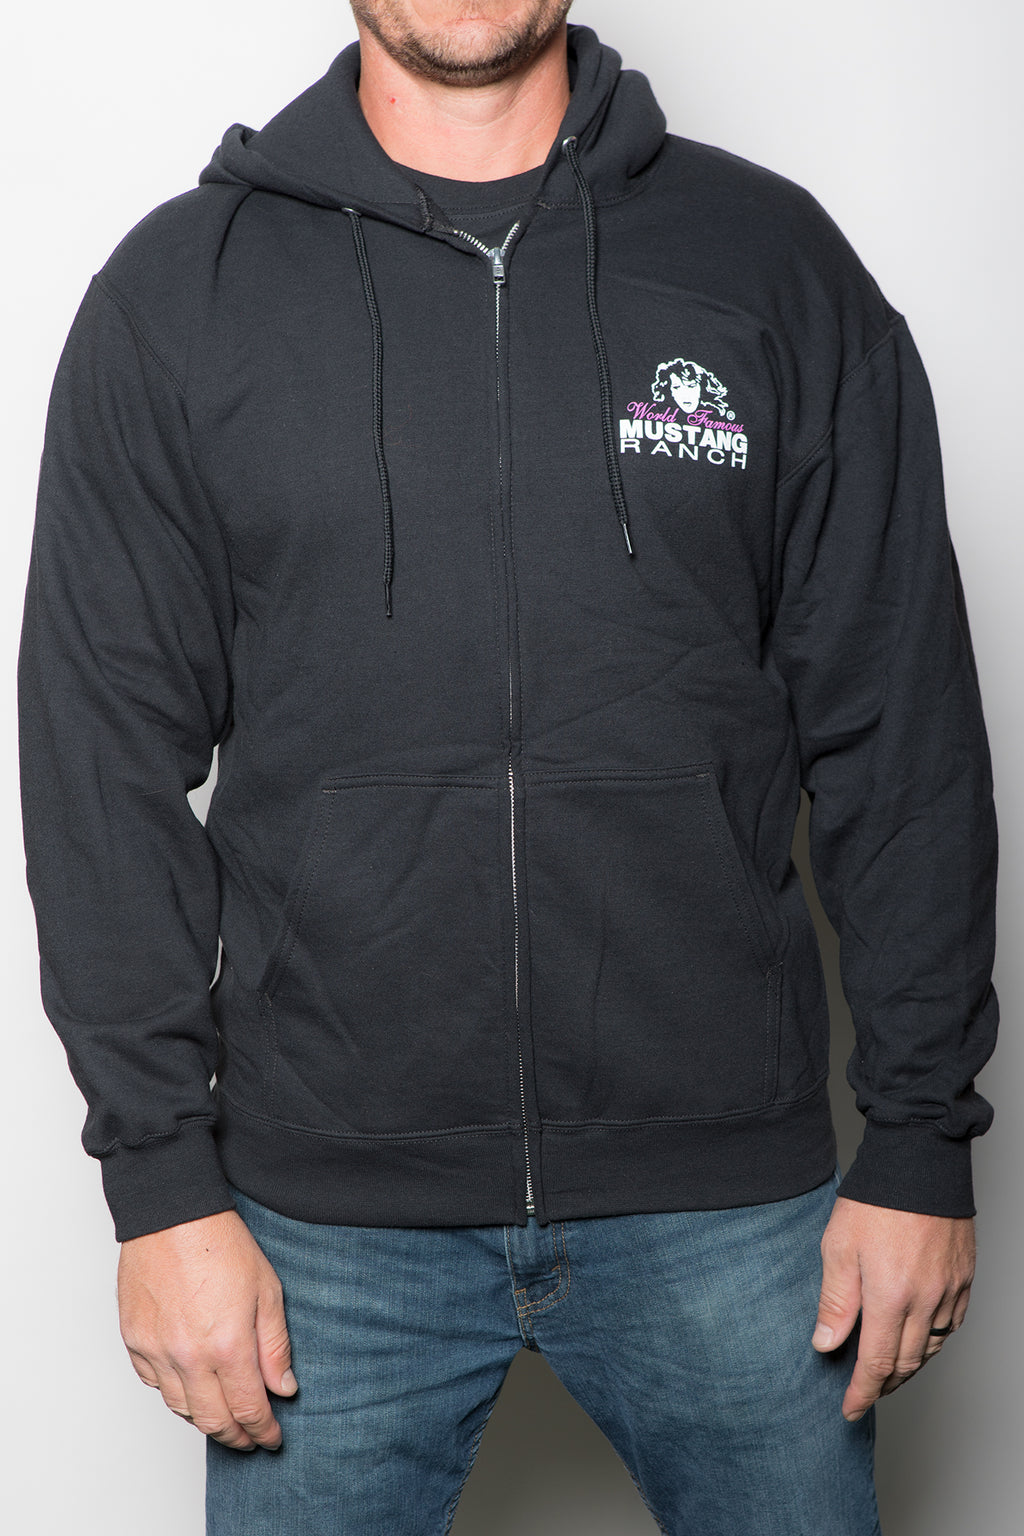 Unisex Zip-up Hoodie with Mustang Ranch Logo